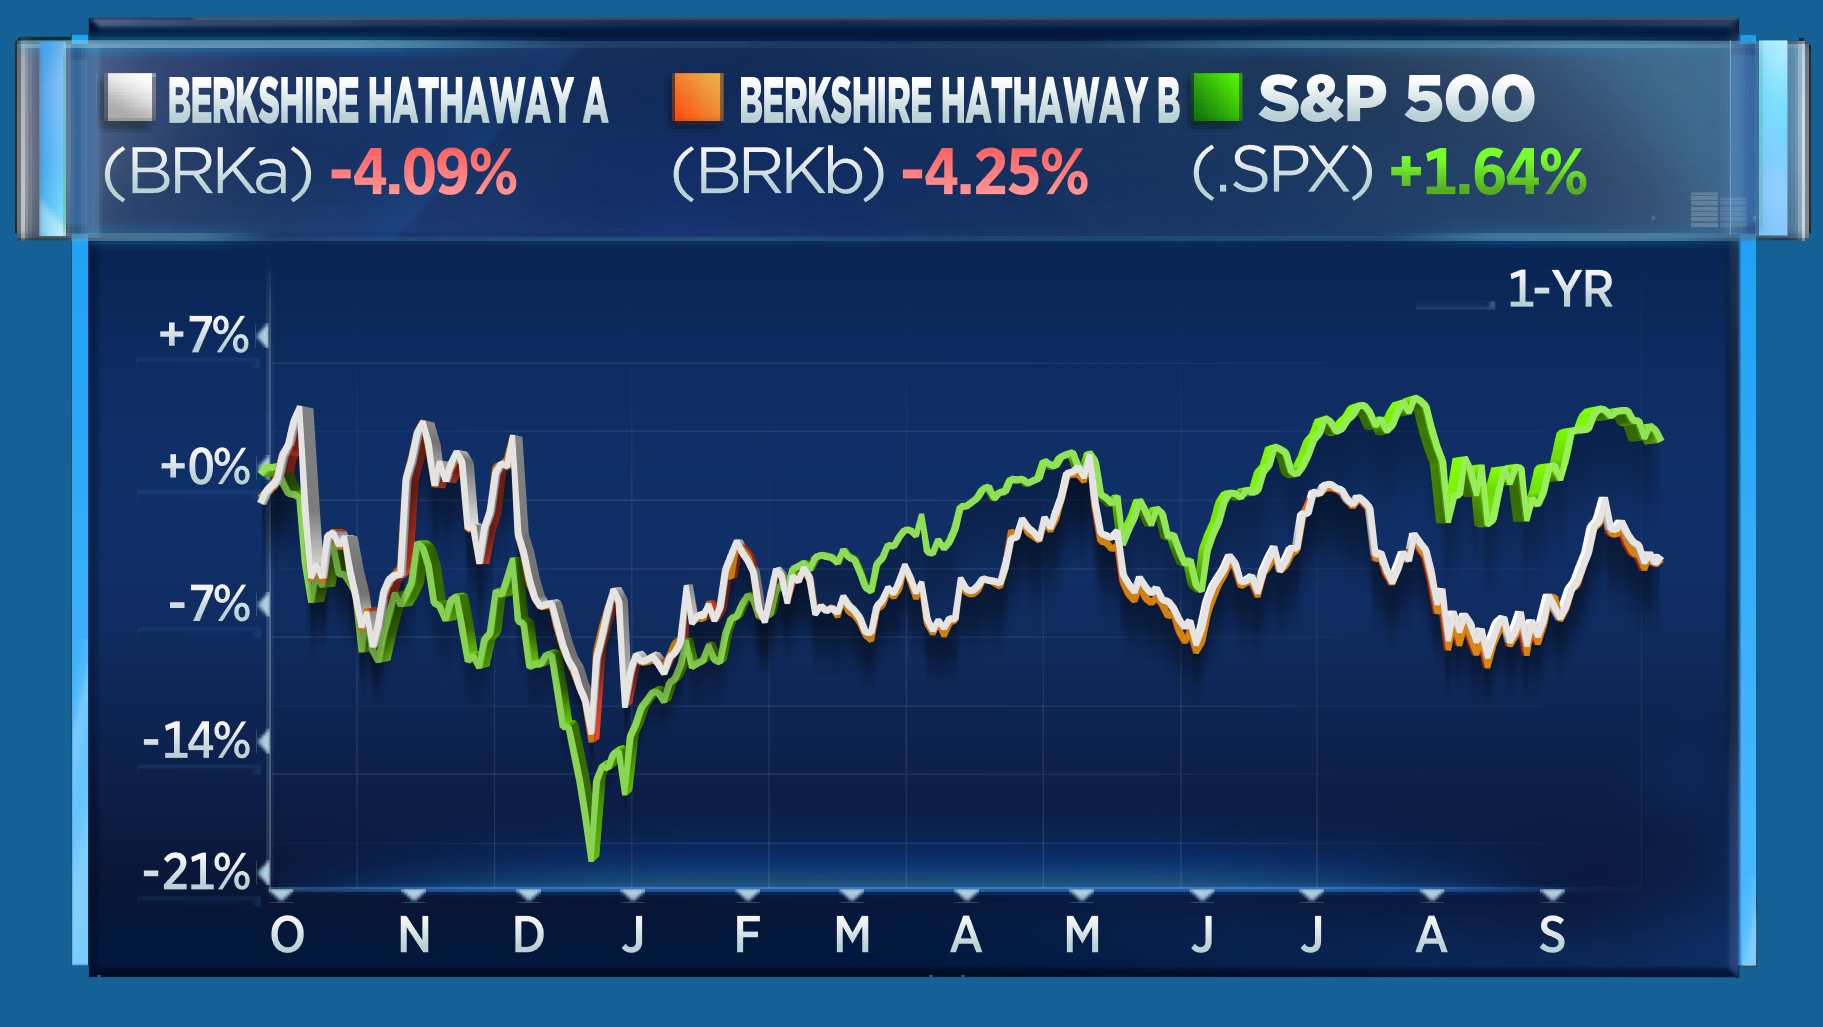 BRKA vs BRKB vs S&P